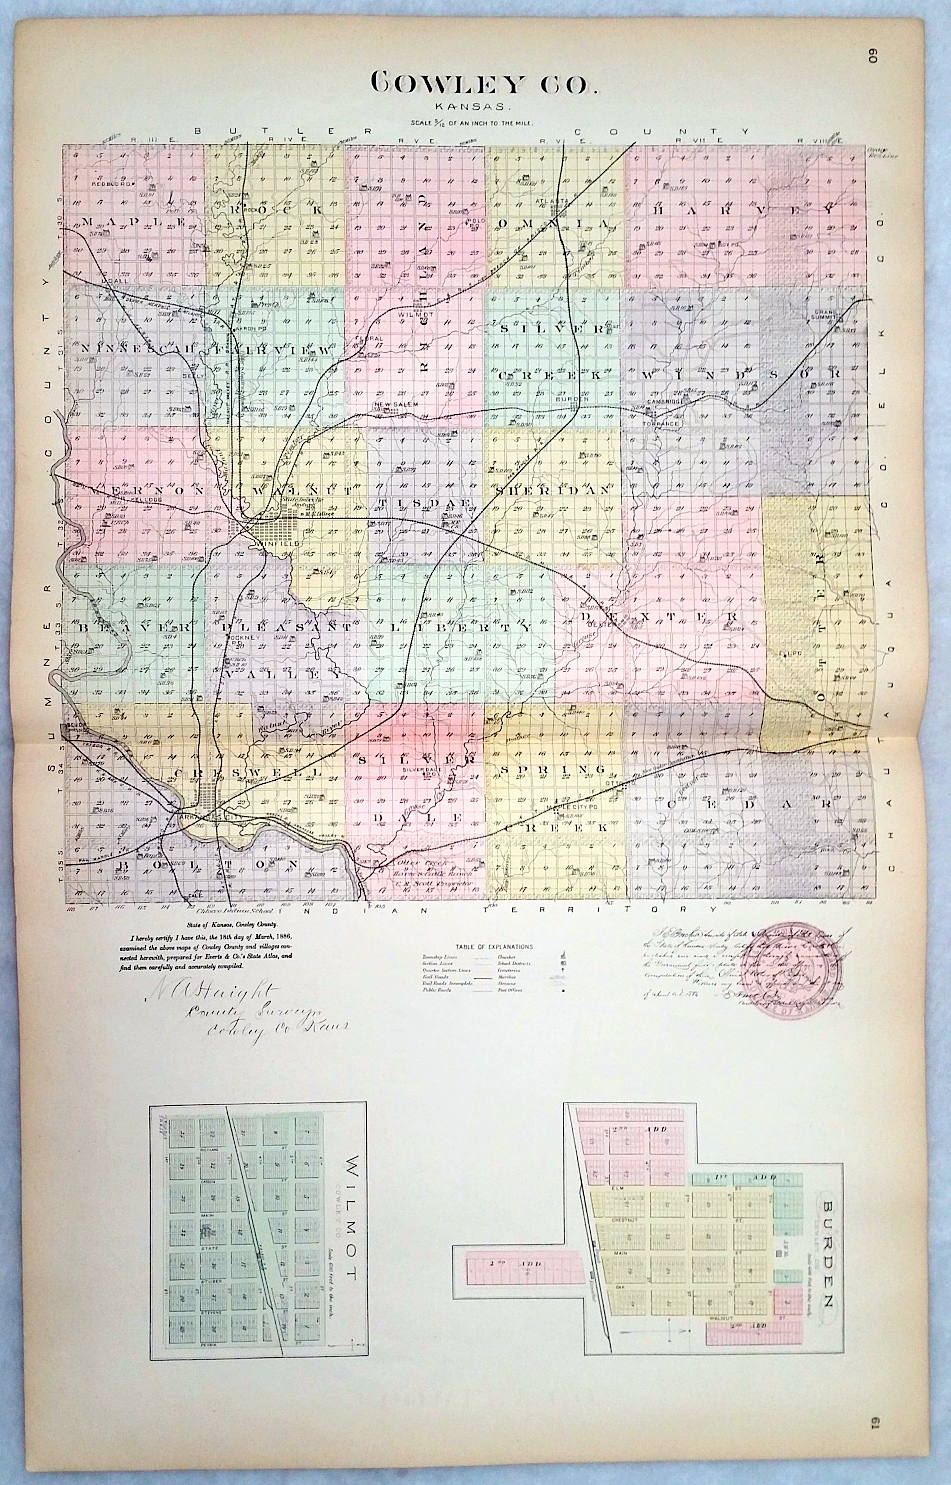 Sumner County Kansas Map.Map Cowley County Kansas With Burden Wilmot Of Cowley Co